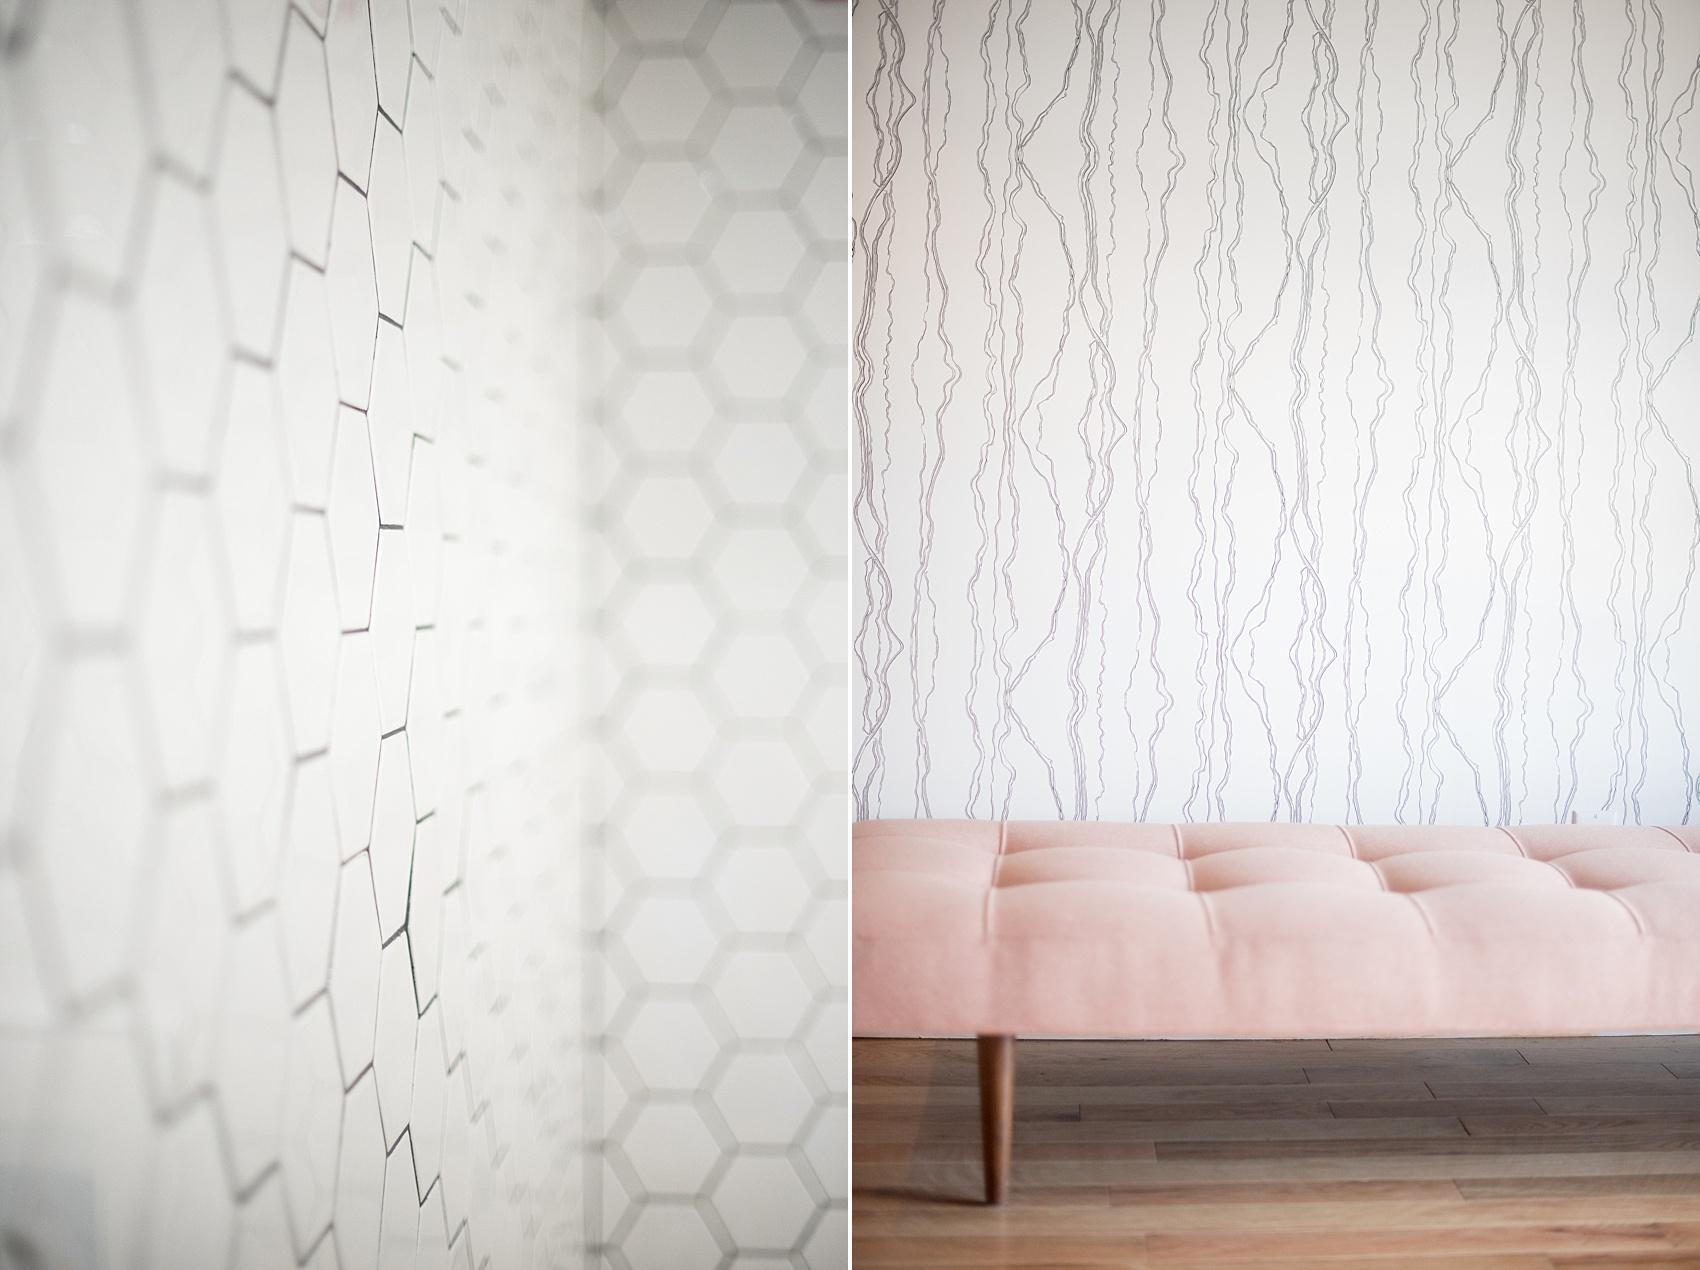 Mikkel Paige Photography, NYC wedding photographer, captures Brooklyn event space, Dobbin St. with modern indoor bridal suite and honeycomb tiling.